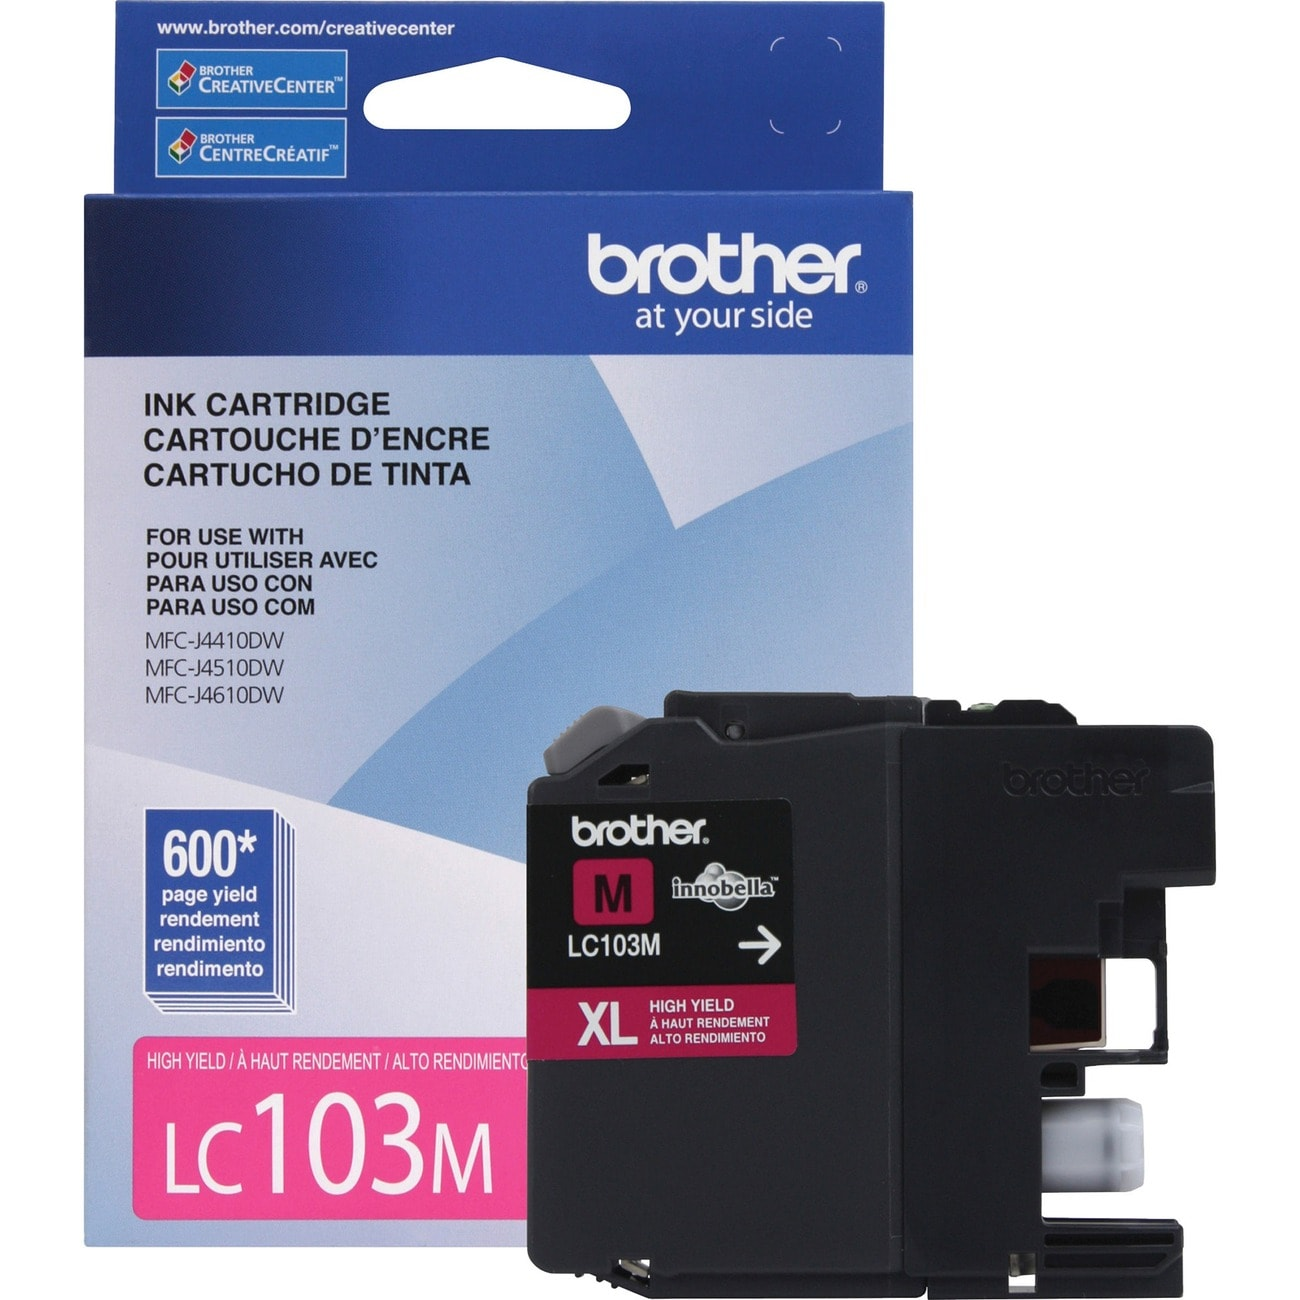 Brother Innobella LC103M Ink Cartridge - Magenta